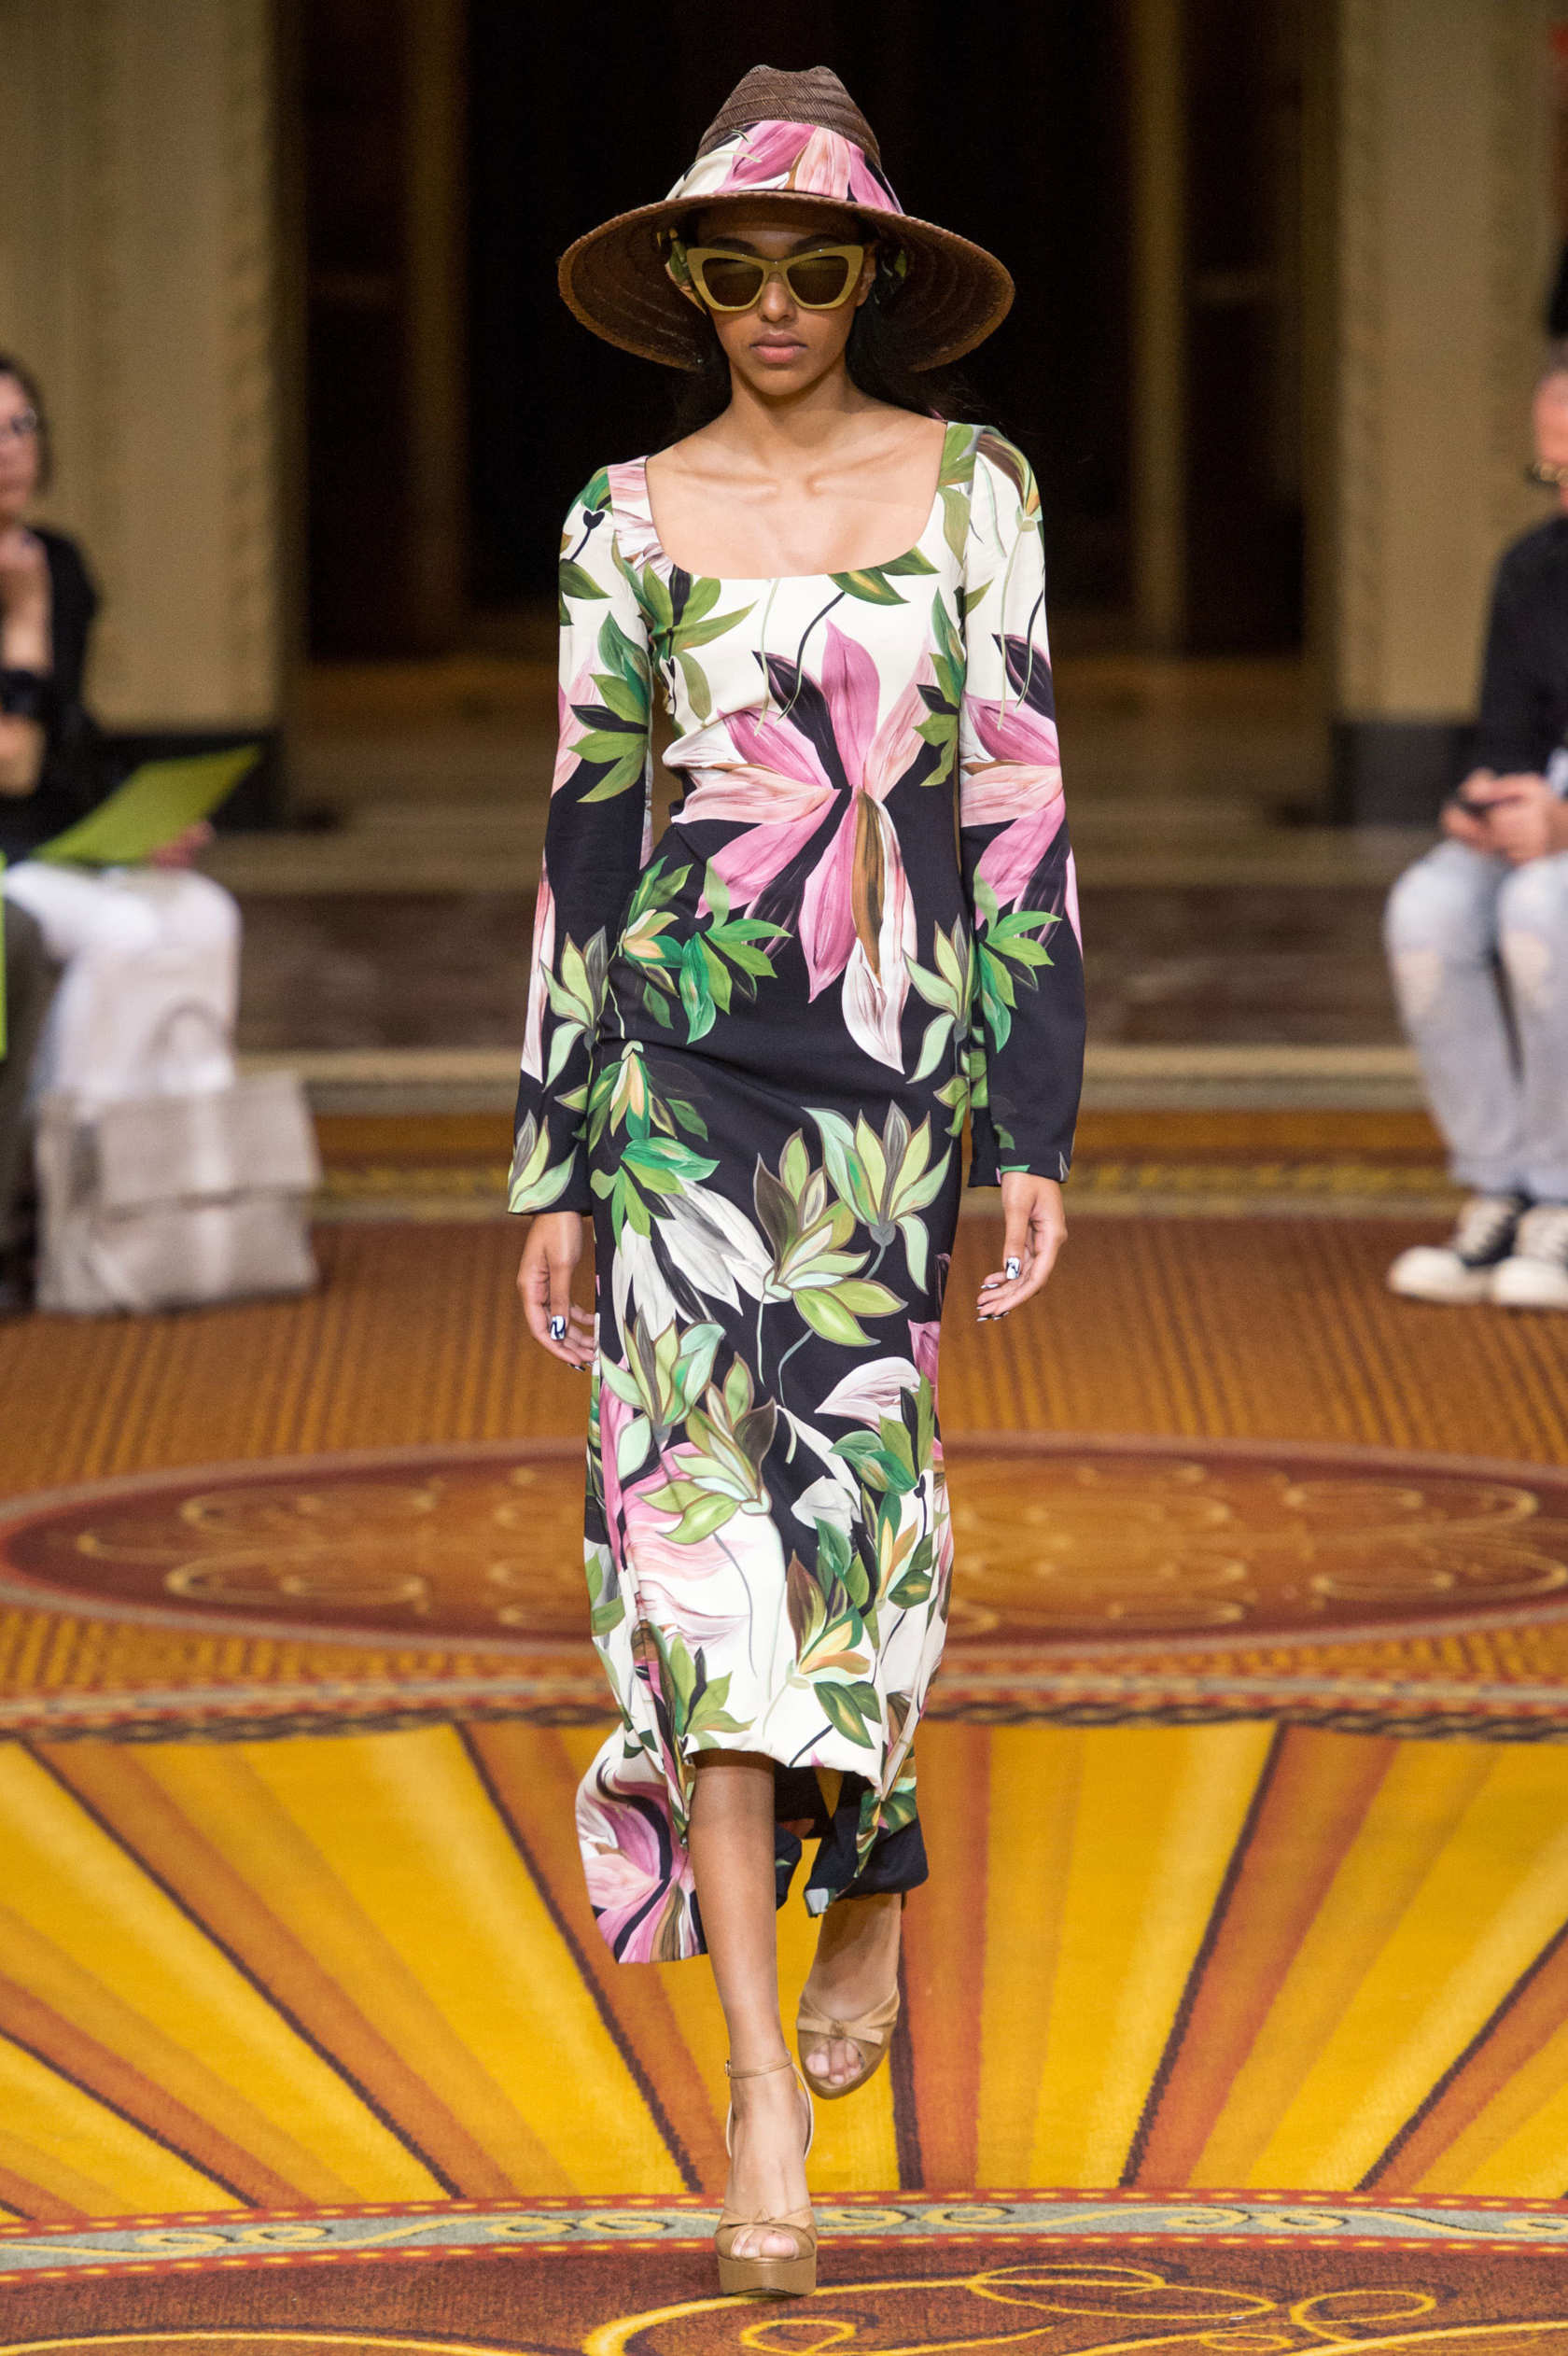 Watch Christian Siriano Spring 2019 RTW Collection at NYFW video